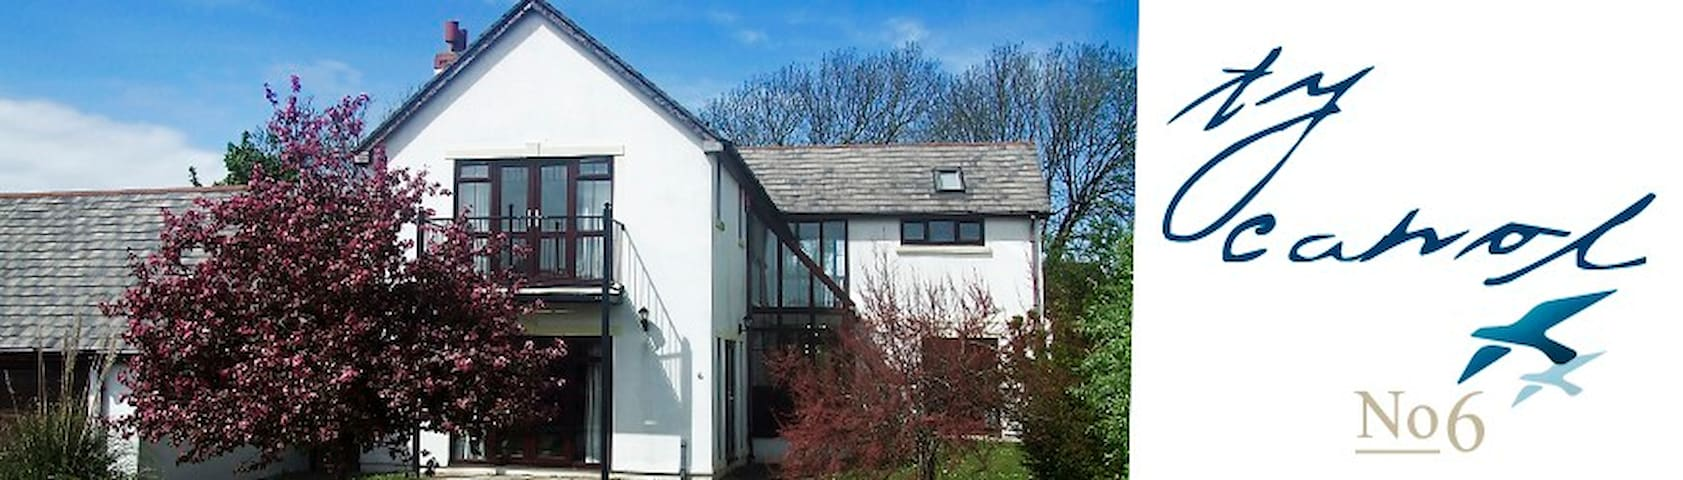 Beach house on the beautiful Gower peninsular - Llangennith